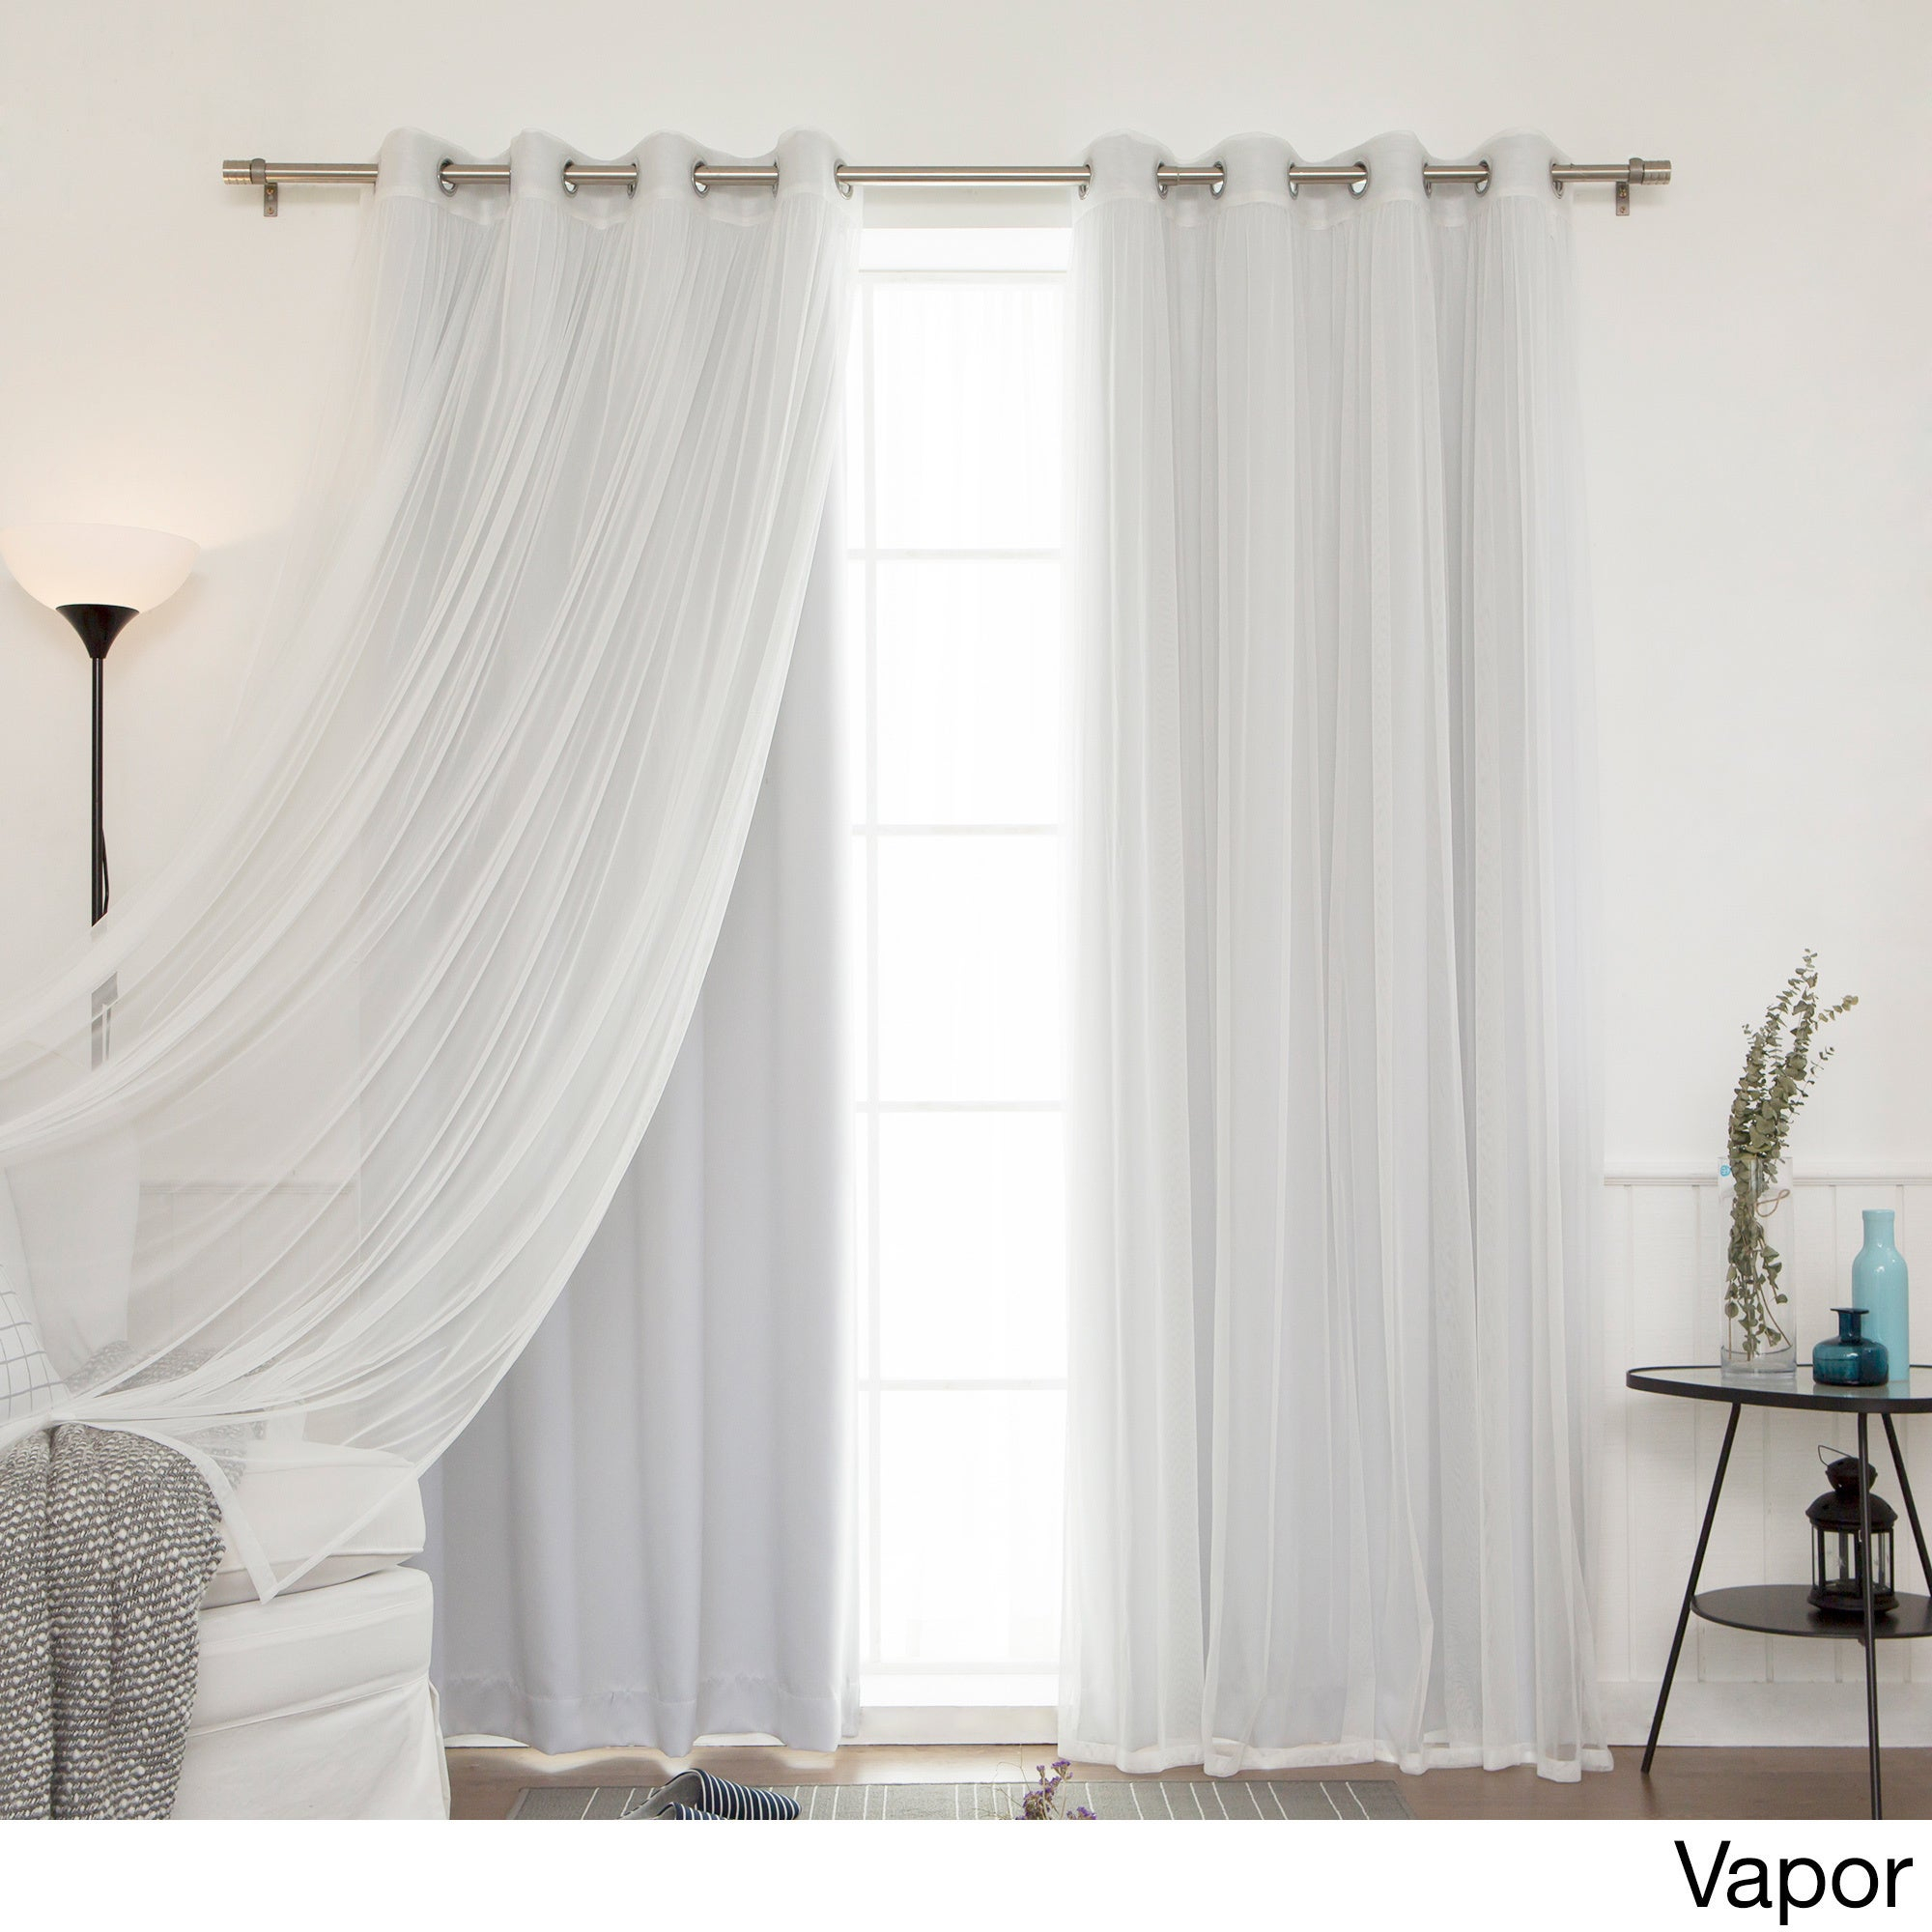 Aurora Home Mix And Match Blackout Tulle Lace Sheer 4 Piece Curtain Panel  Set within Aurora Sun Wall Decor (Image 5 of 30)